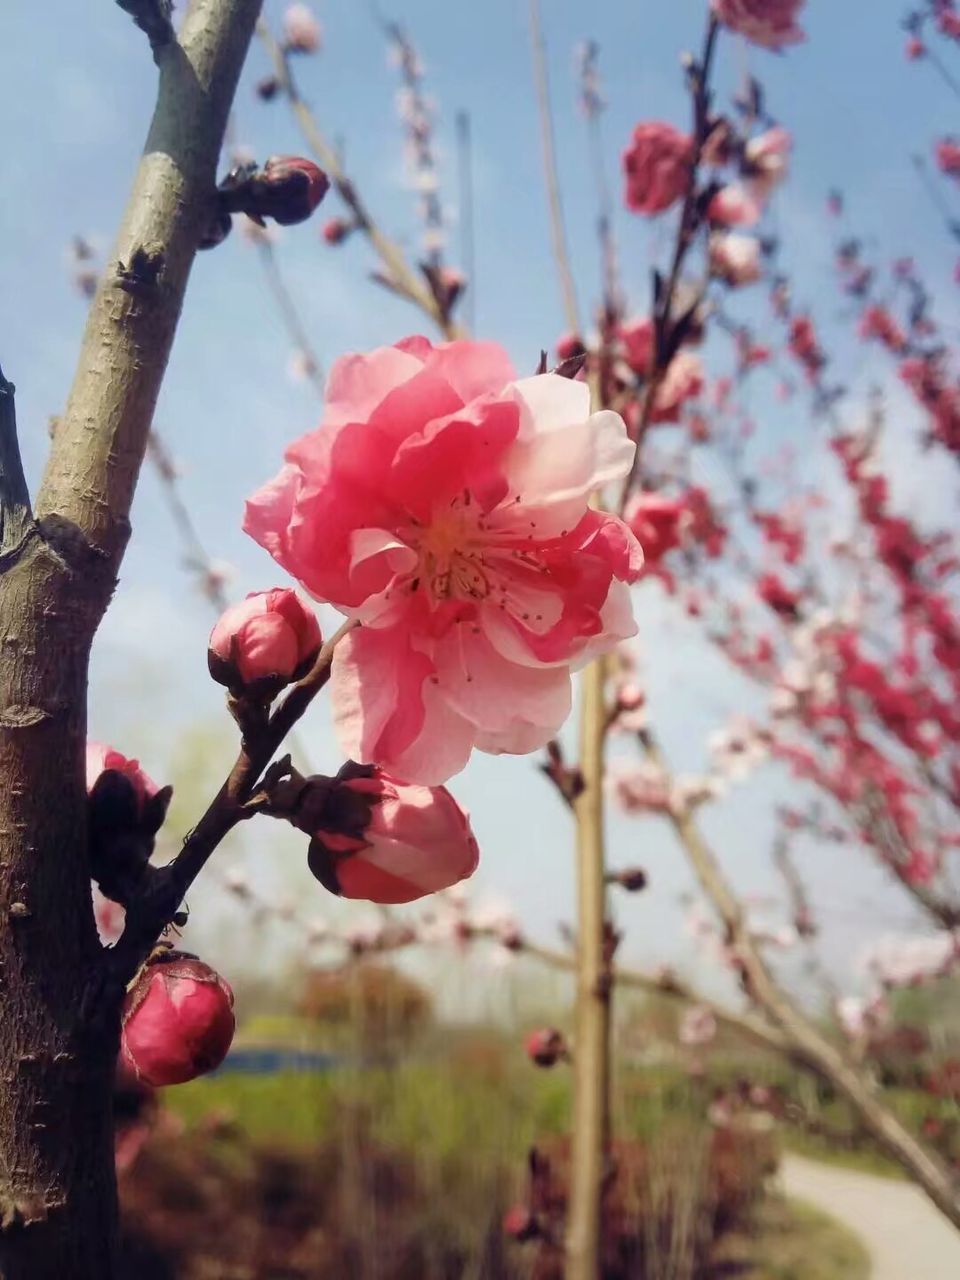 flower, growth, beauty in nature, fragility, tree, nature, blossom, freshness, springtime, petal, apple blossom, branch, twig, apple tree, close-up, day, focus on foreground, no people, pink color, botany, orchard, outdoors, red, flower head, plum blossom, blooming, stamen, sky